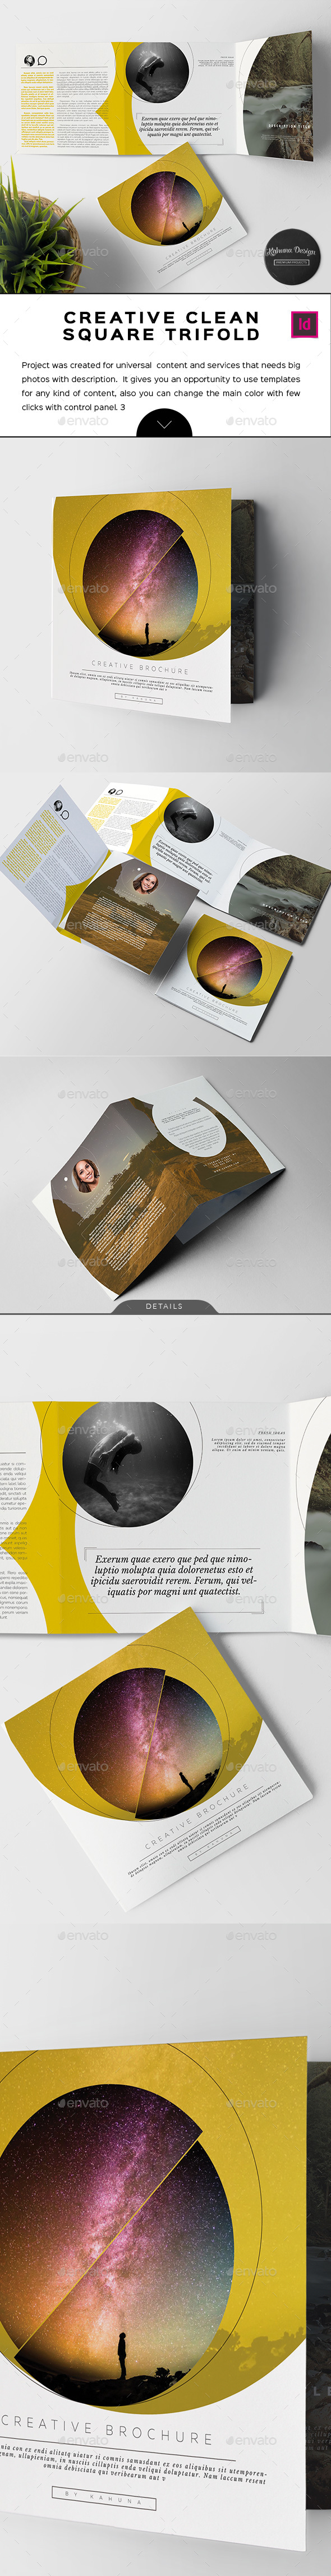 Creative Clean Square Trifold Brochure - Informational Brochures